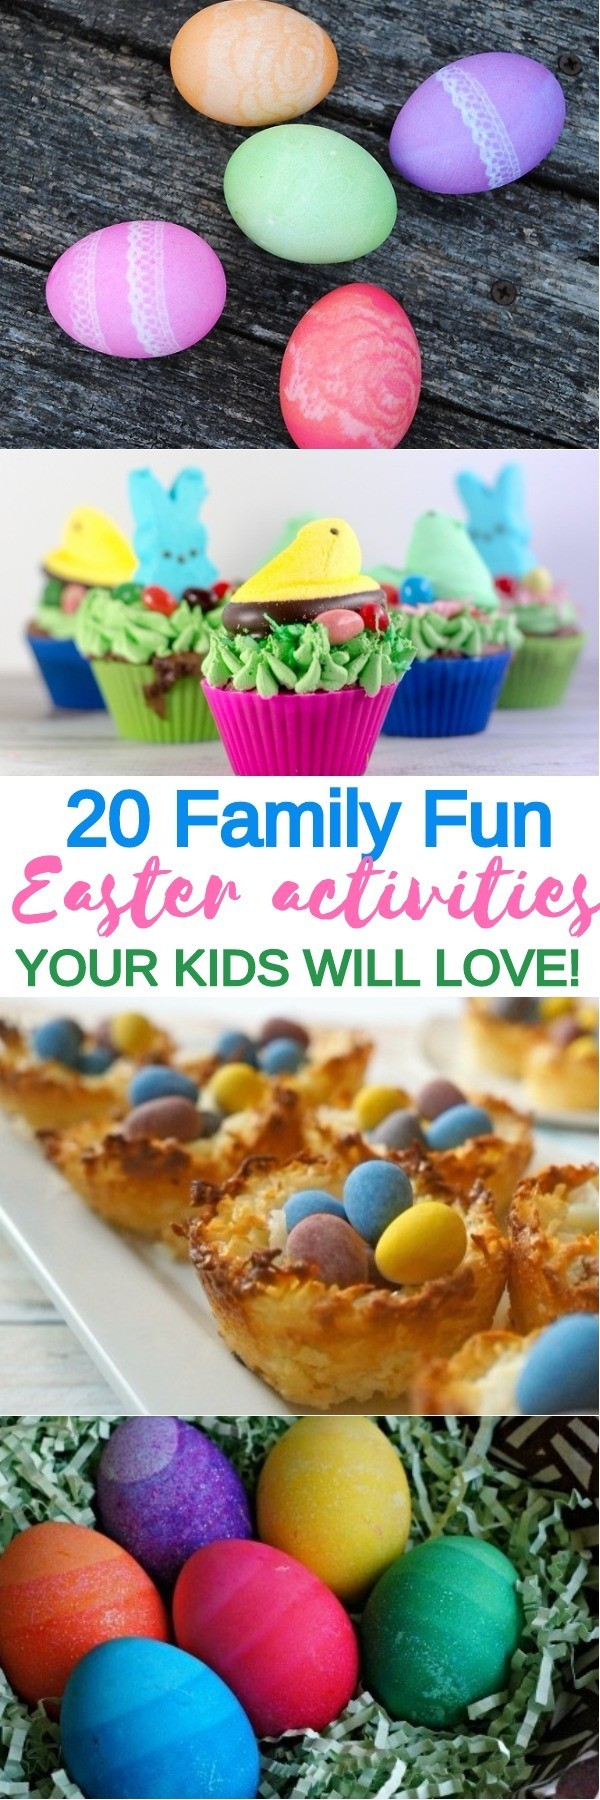 20 Easter Activities for Kids - Easter Treats, Egg Decorating Ideas, and Easter Printables | easter crafts for kids | what to do for easter | easter games and activities | honeyandlime.co